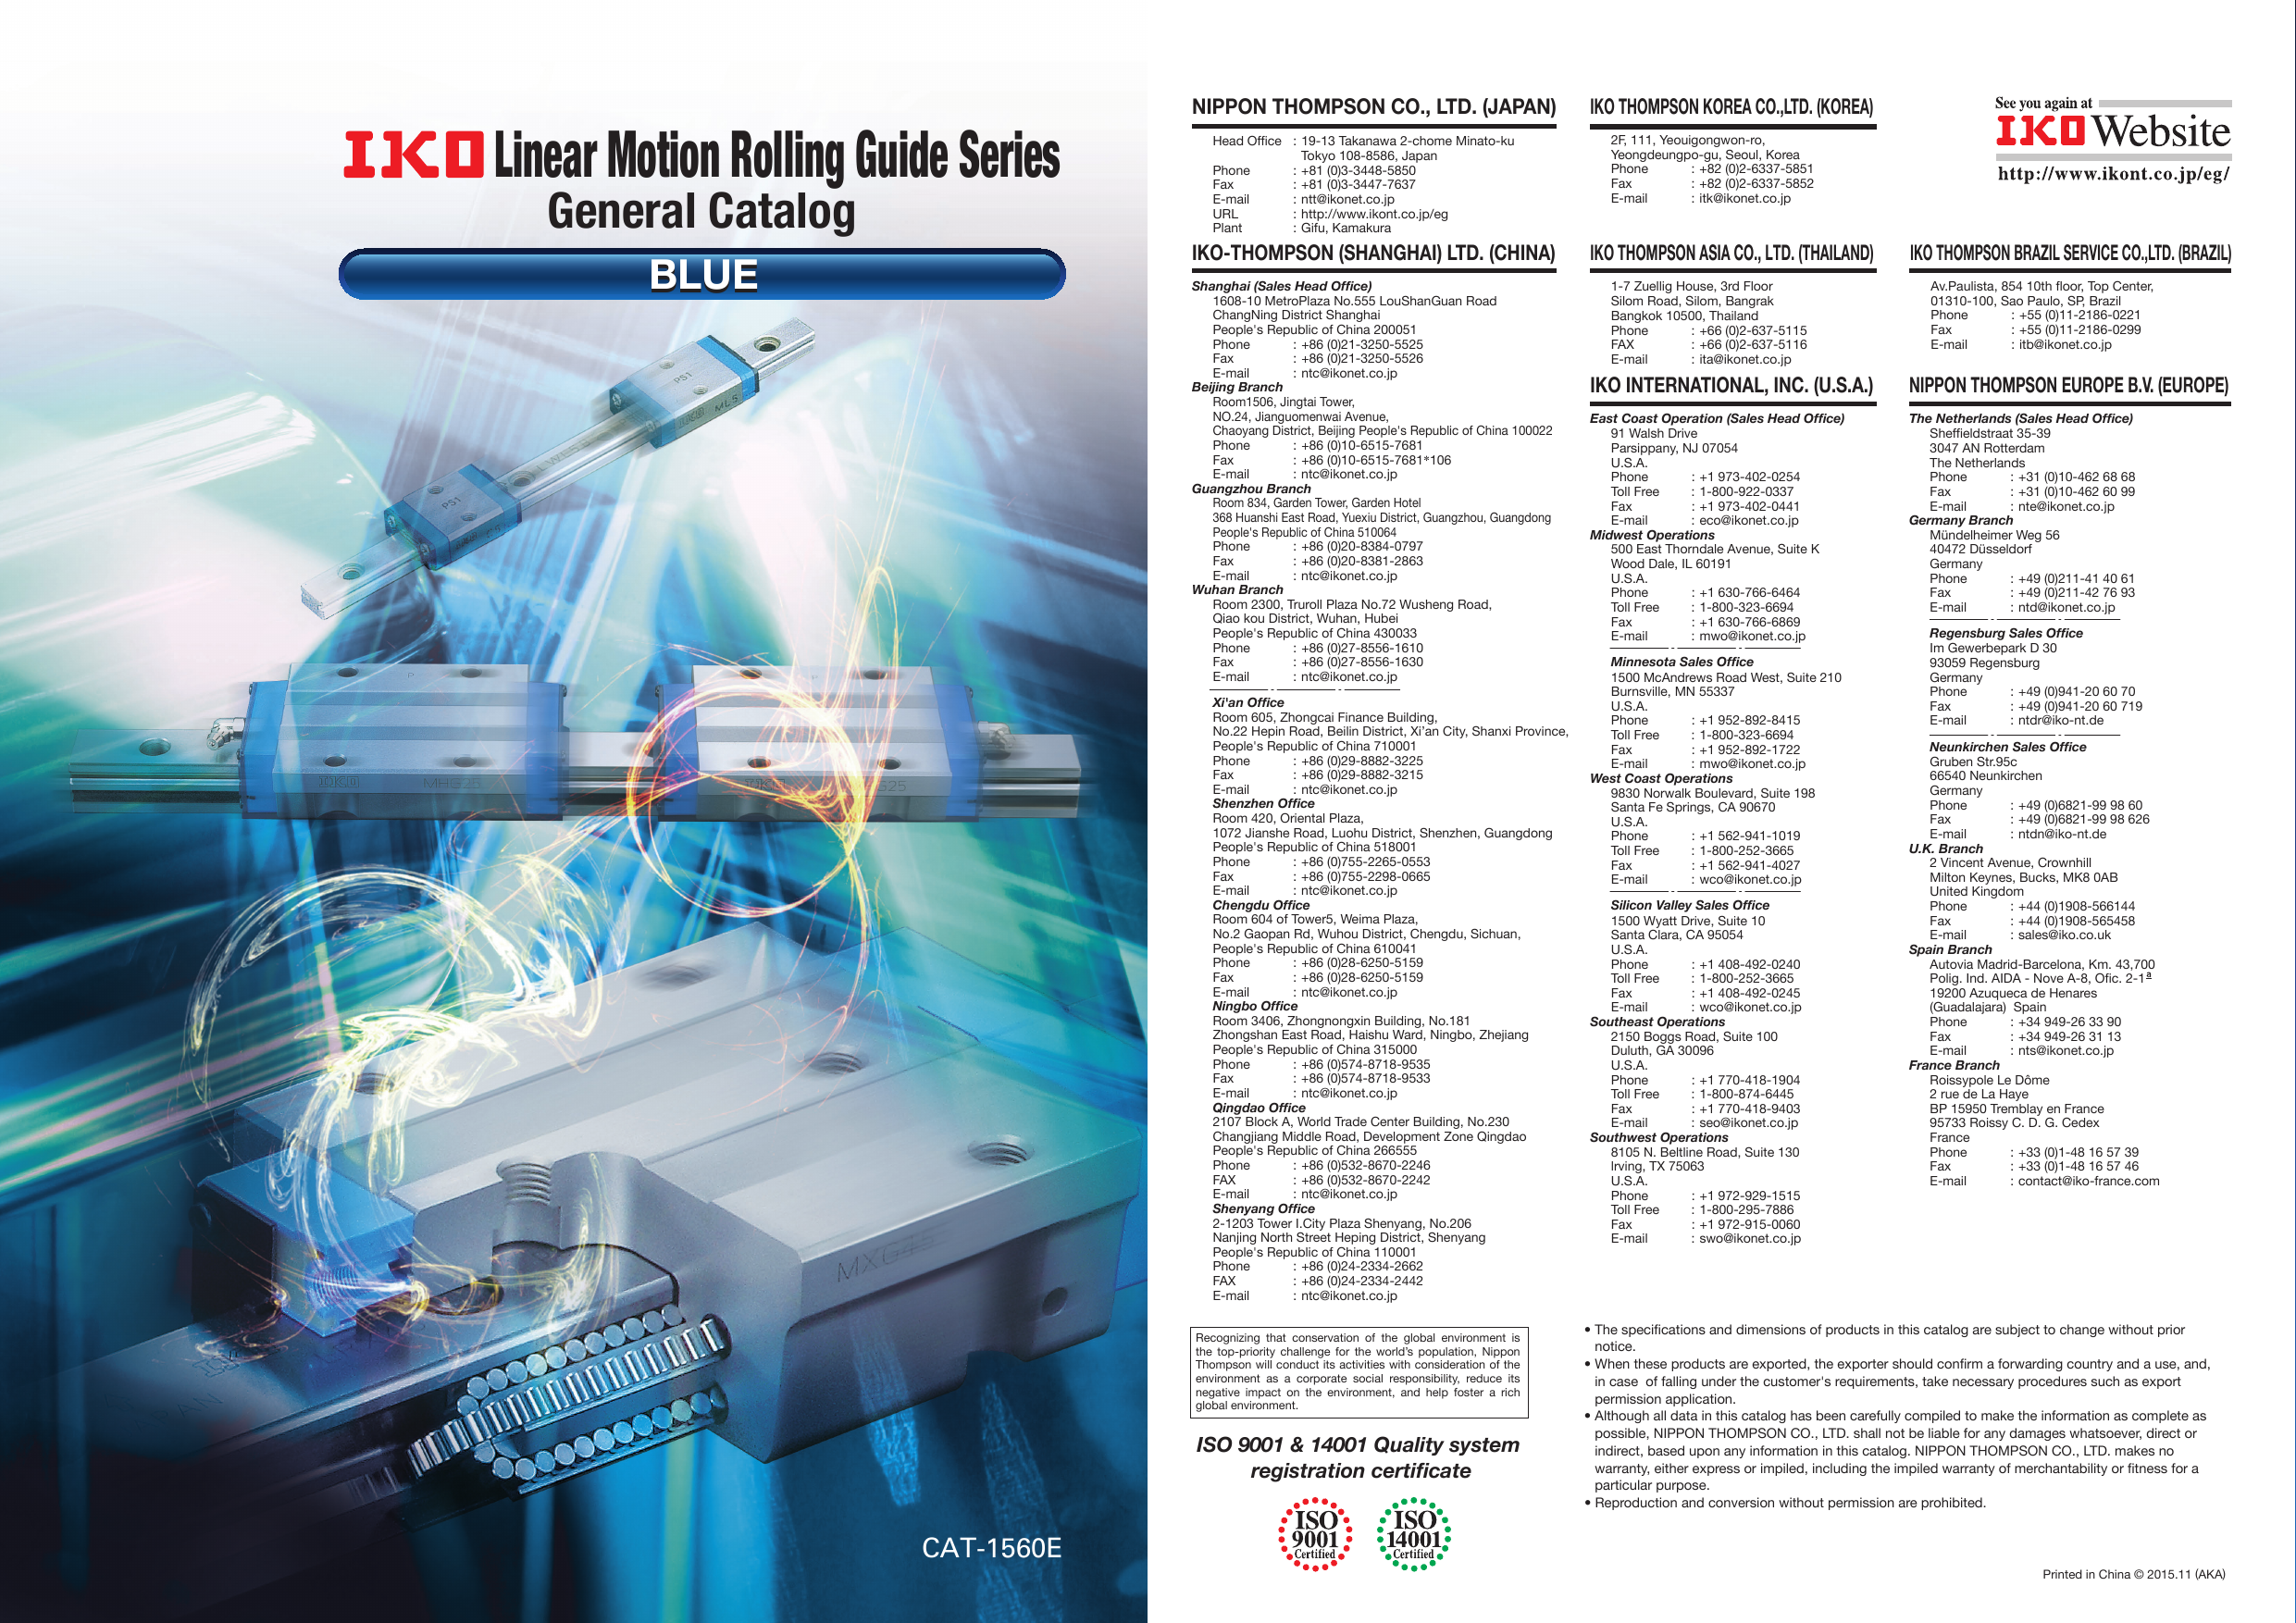 IKO Linear Motion Rolling Guide Series General Catalog BLUE